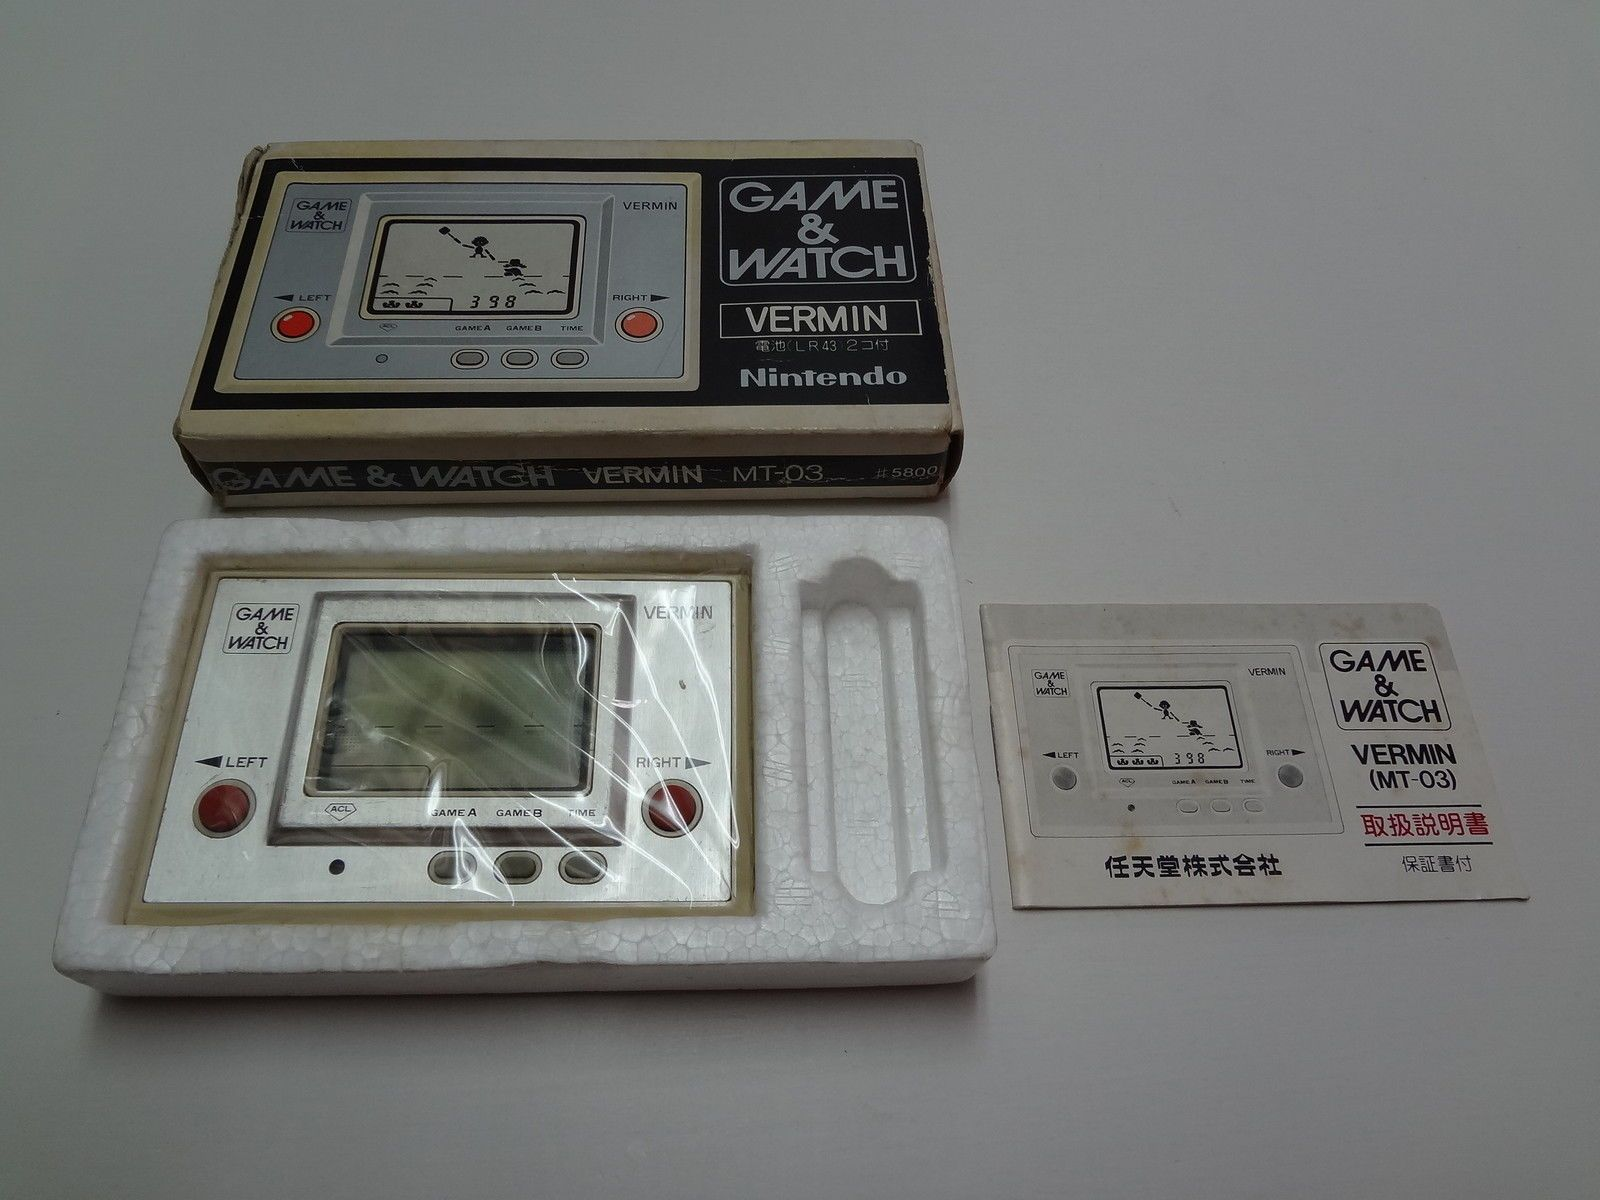 Yo Fui A Egb Juego De Mesa Opiniones Game And Watch Vermin Nintendo Japan C Nintendo Game